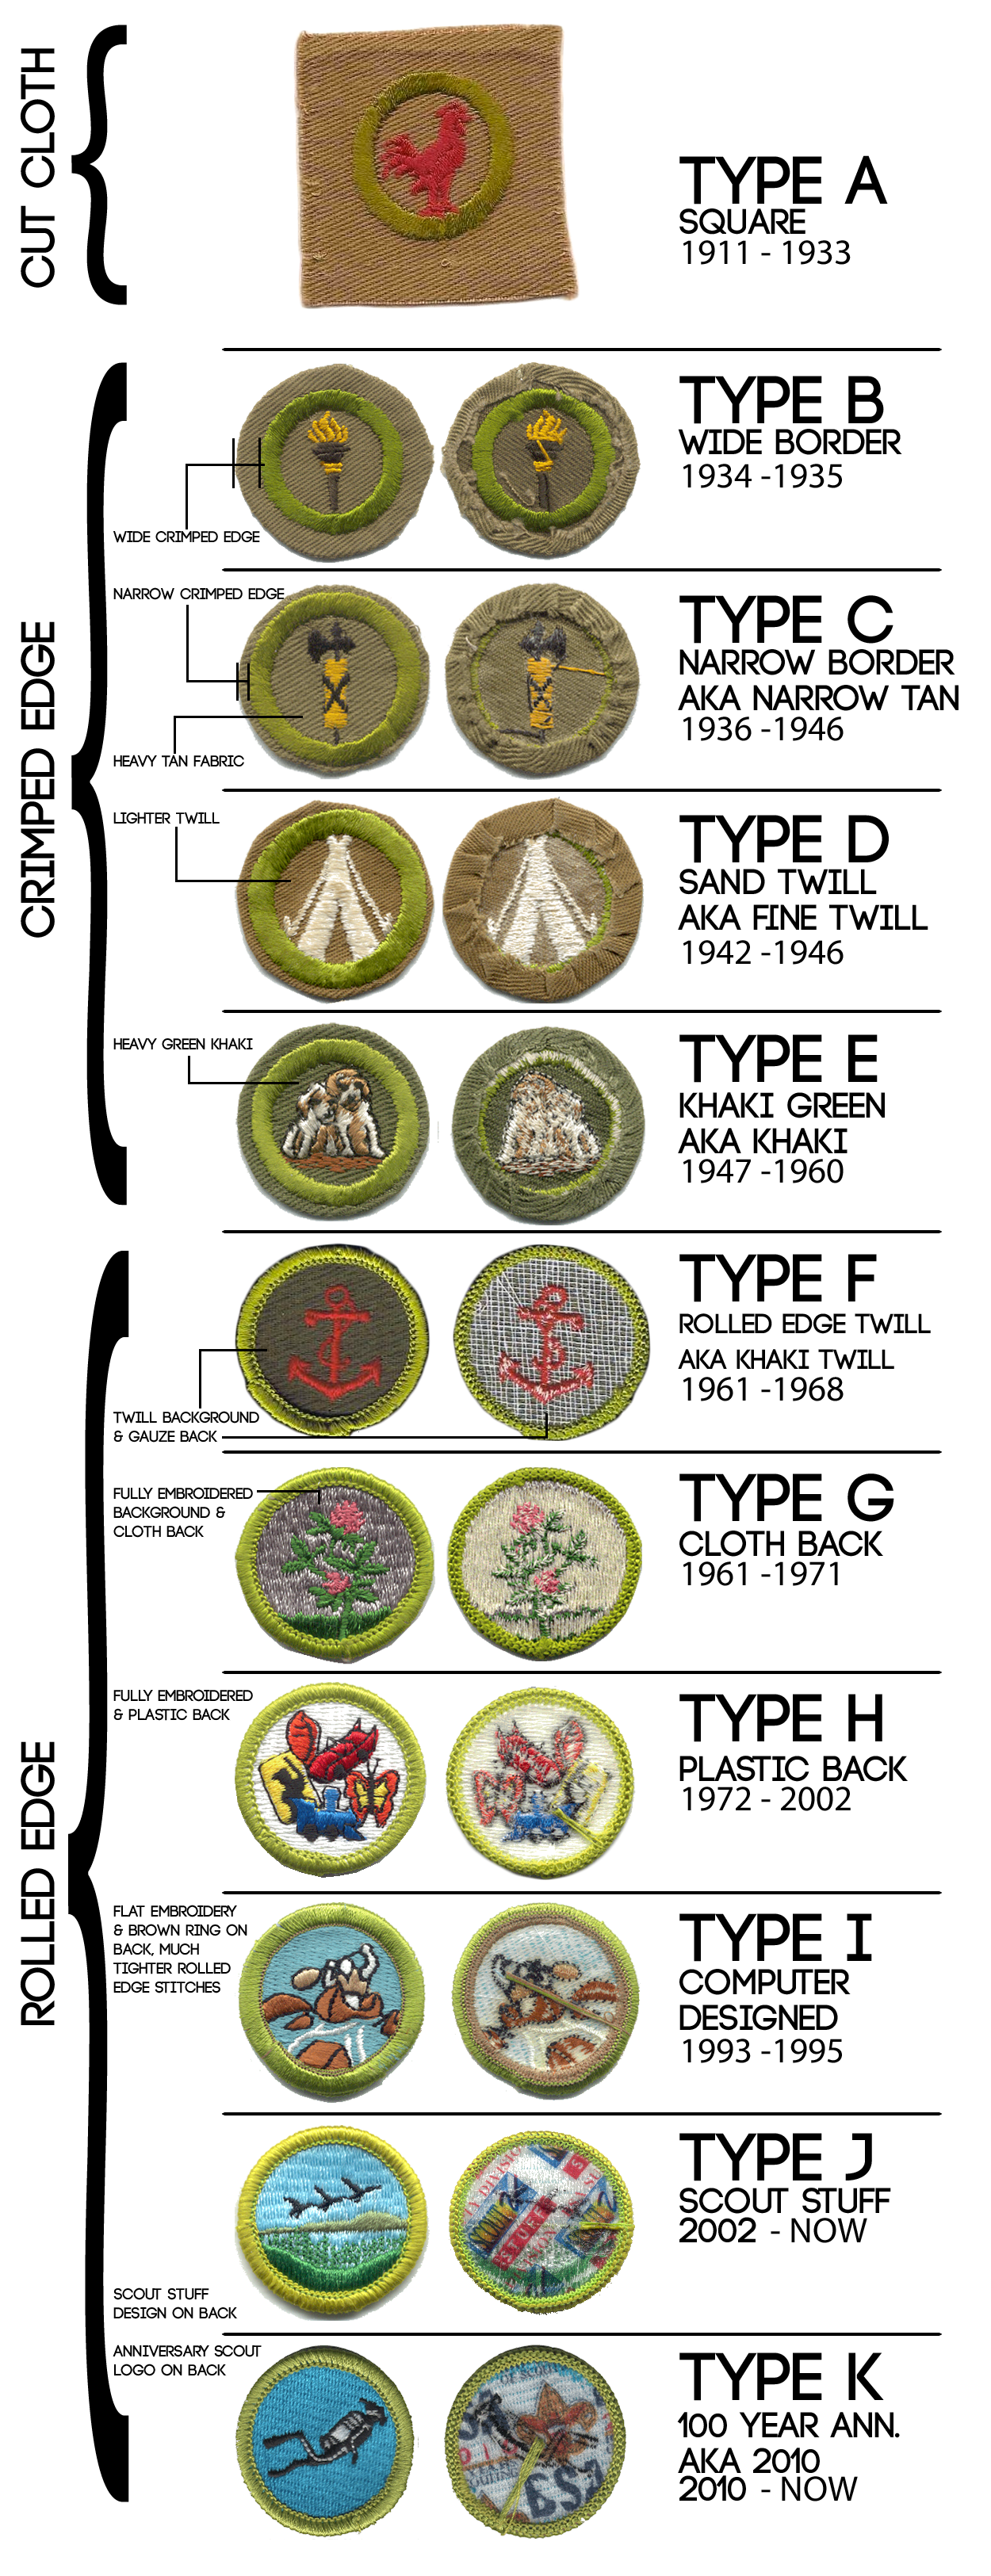 History And Value Of Boy Scout Merit Badges